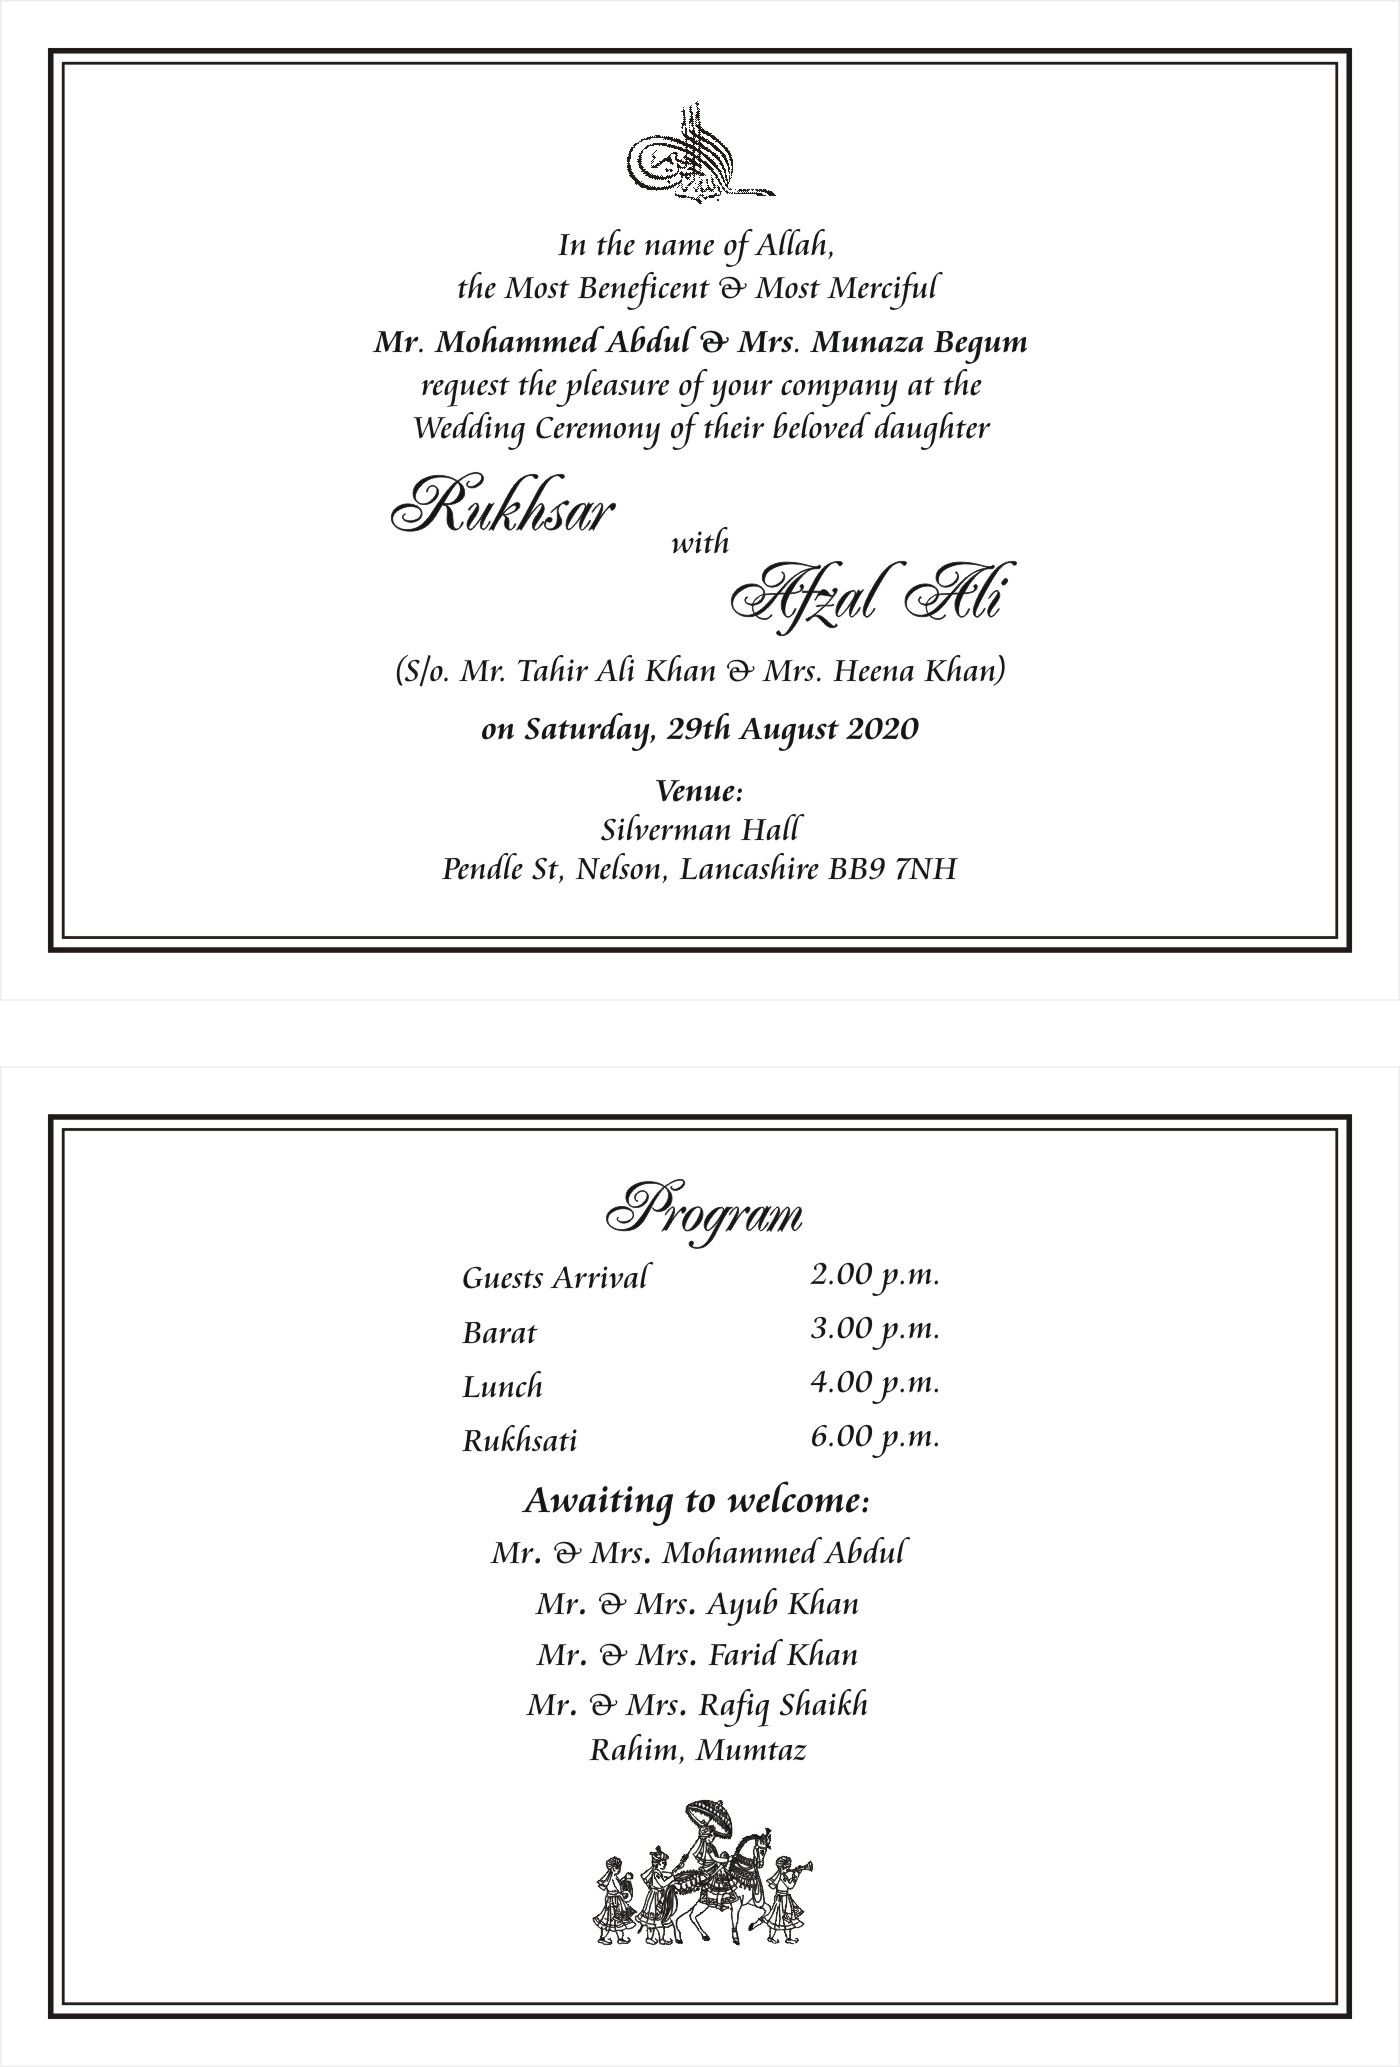 Nikah wordings for invitation card traditional muslim wedding card nikah wordings for invitation card stopboris Choice Image